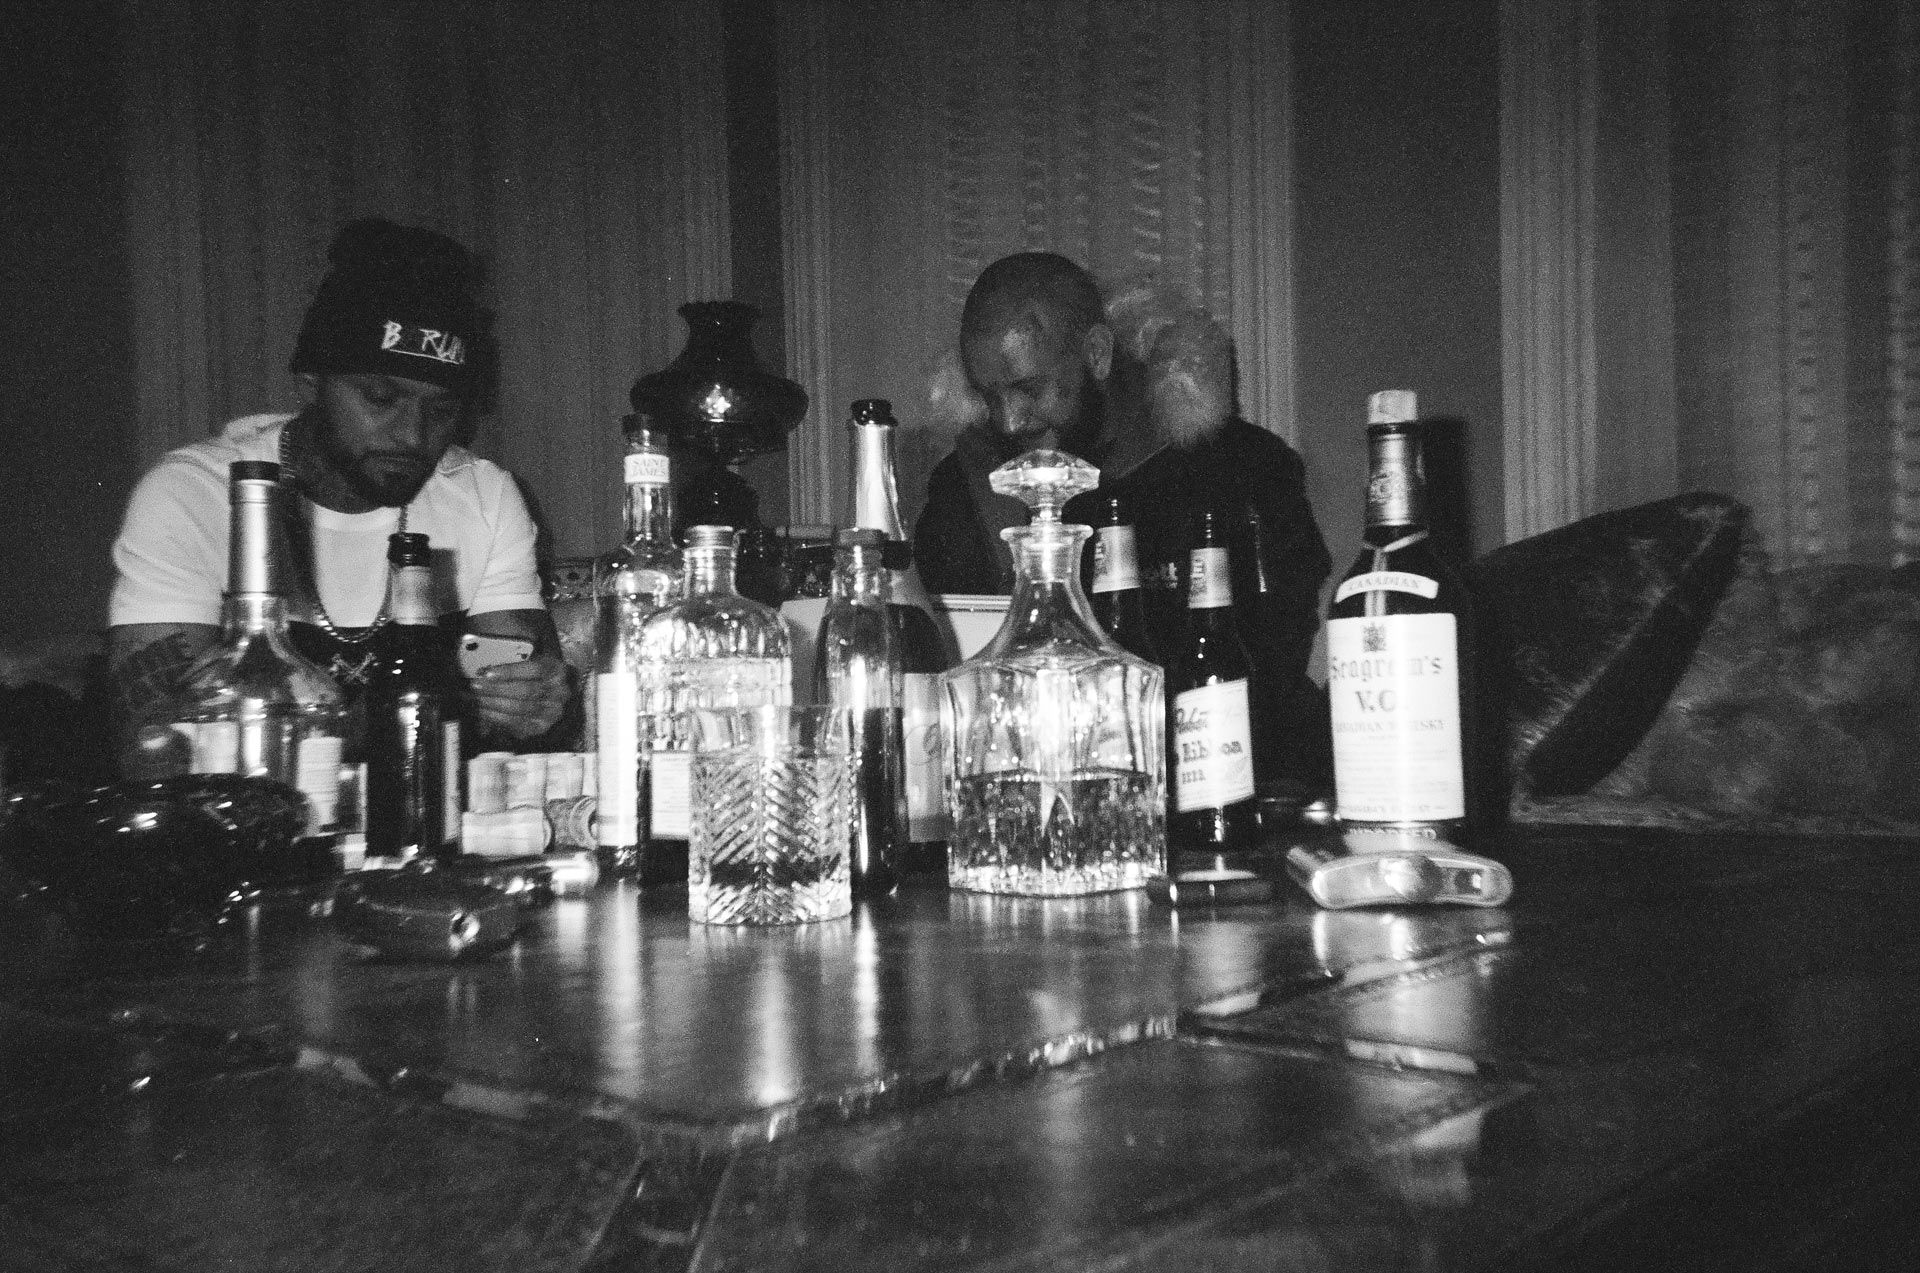 rapper Souldia and Seth Gueko sitting on couch looking at their phones with table layered with alcohol bottles and glasses for his music video Rouge Neige filmed by Les Gamins featuring Sinik and Rick Pagano